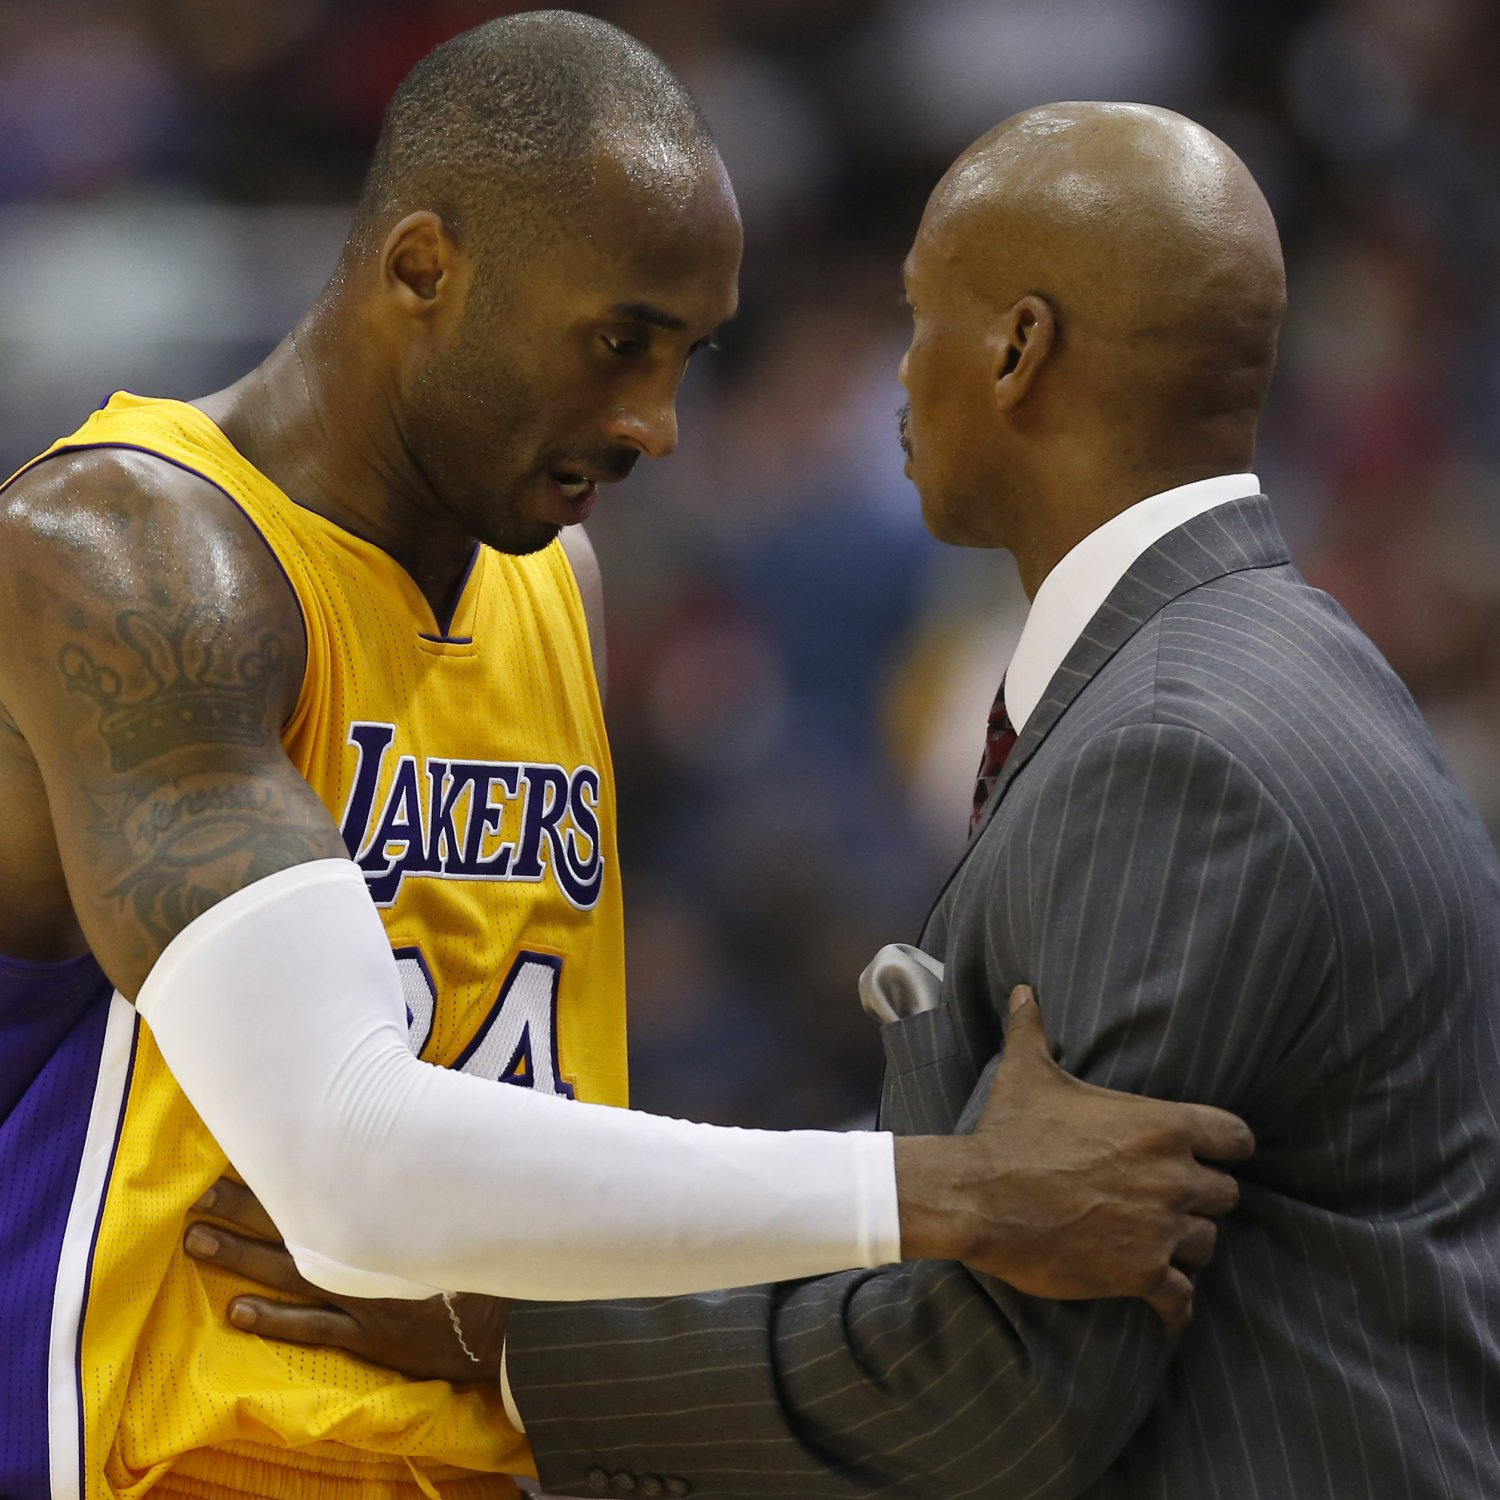 Blazers Vs Lakers: Kobe Bryant Told Byron Scott About Retirement During Game